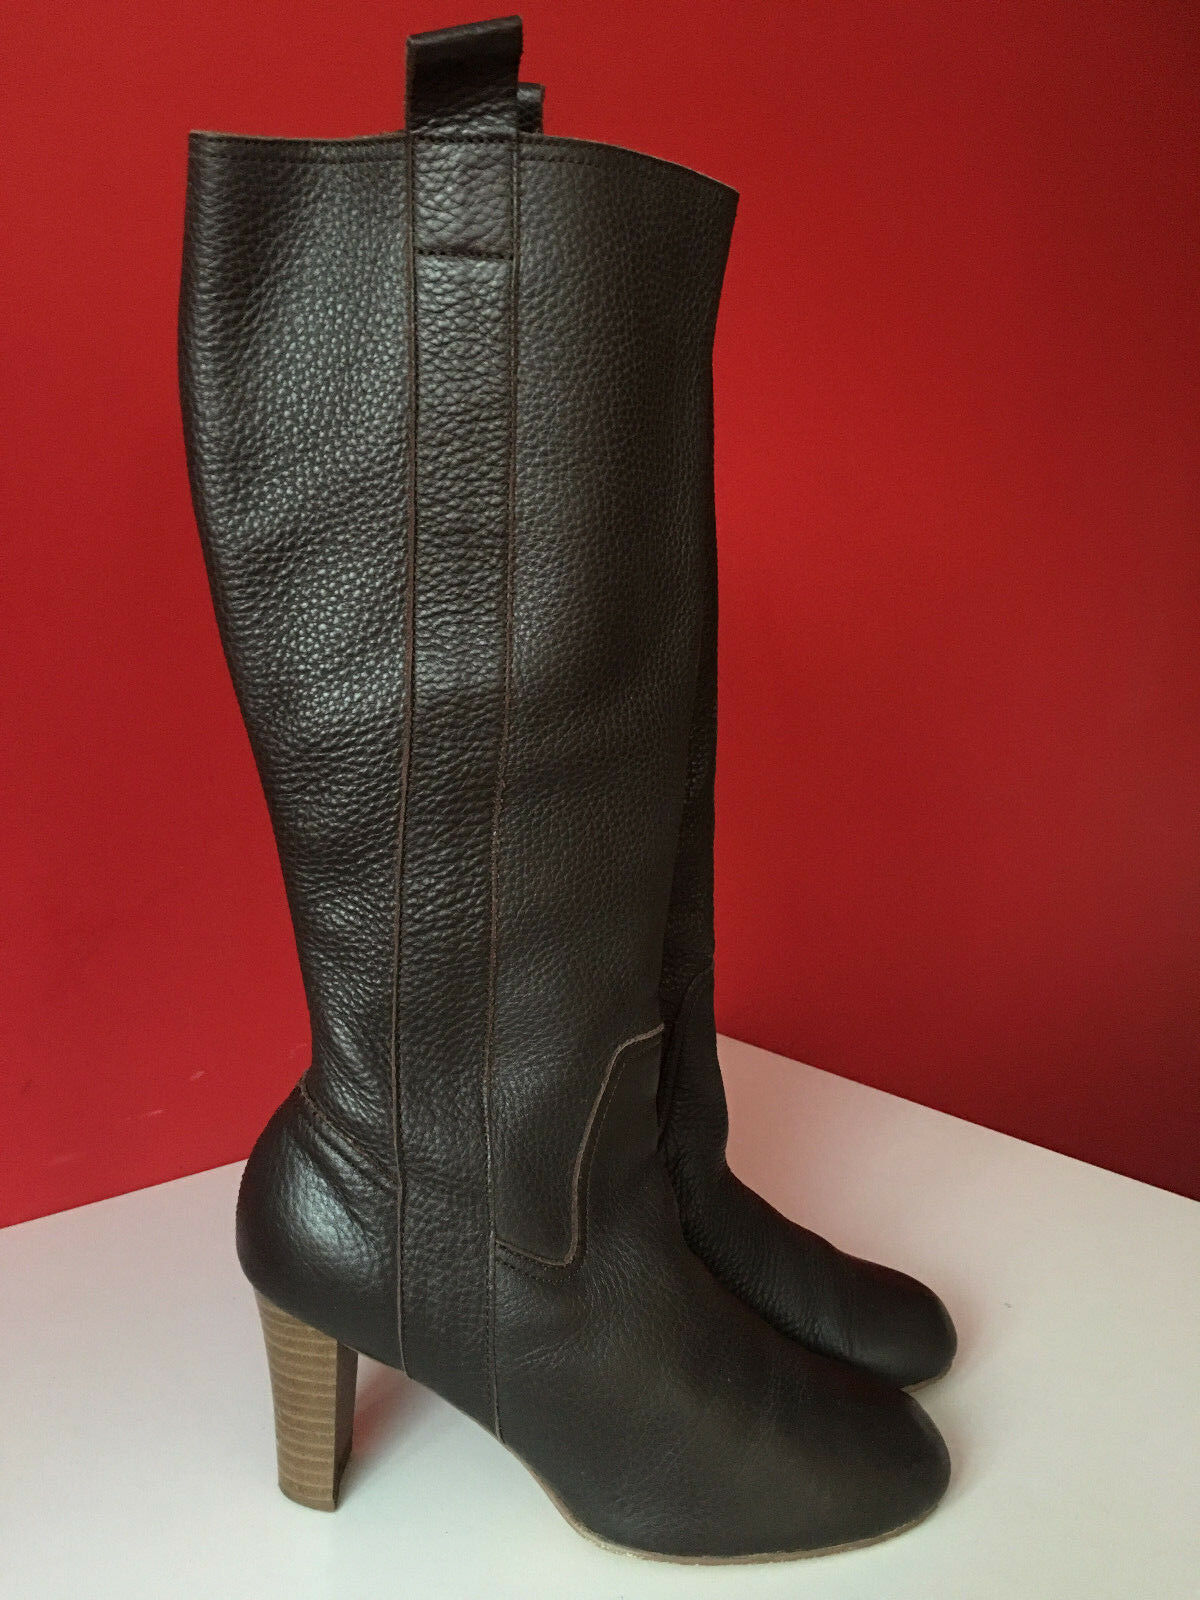 M&S Marks & Spencer Brown Leather Pull On Knee High Boots Size 5.5 EUR 39